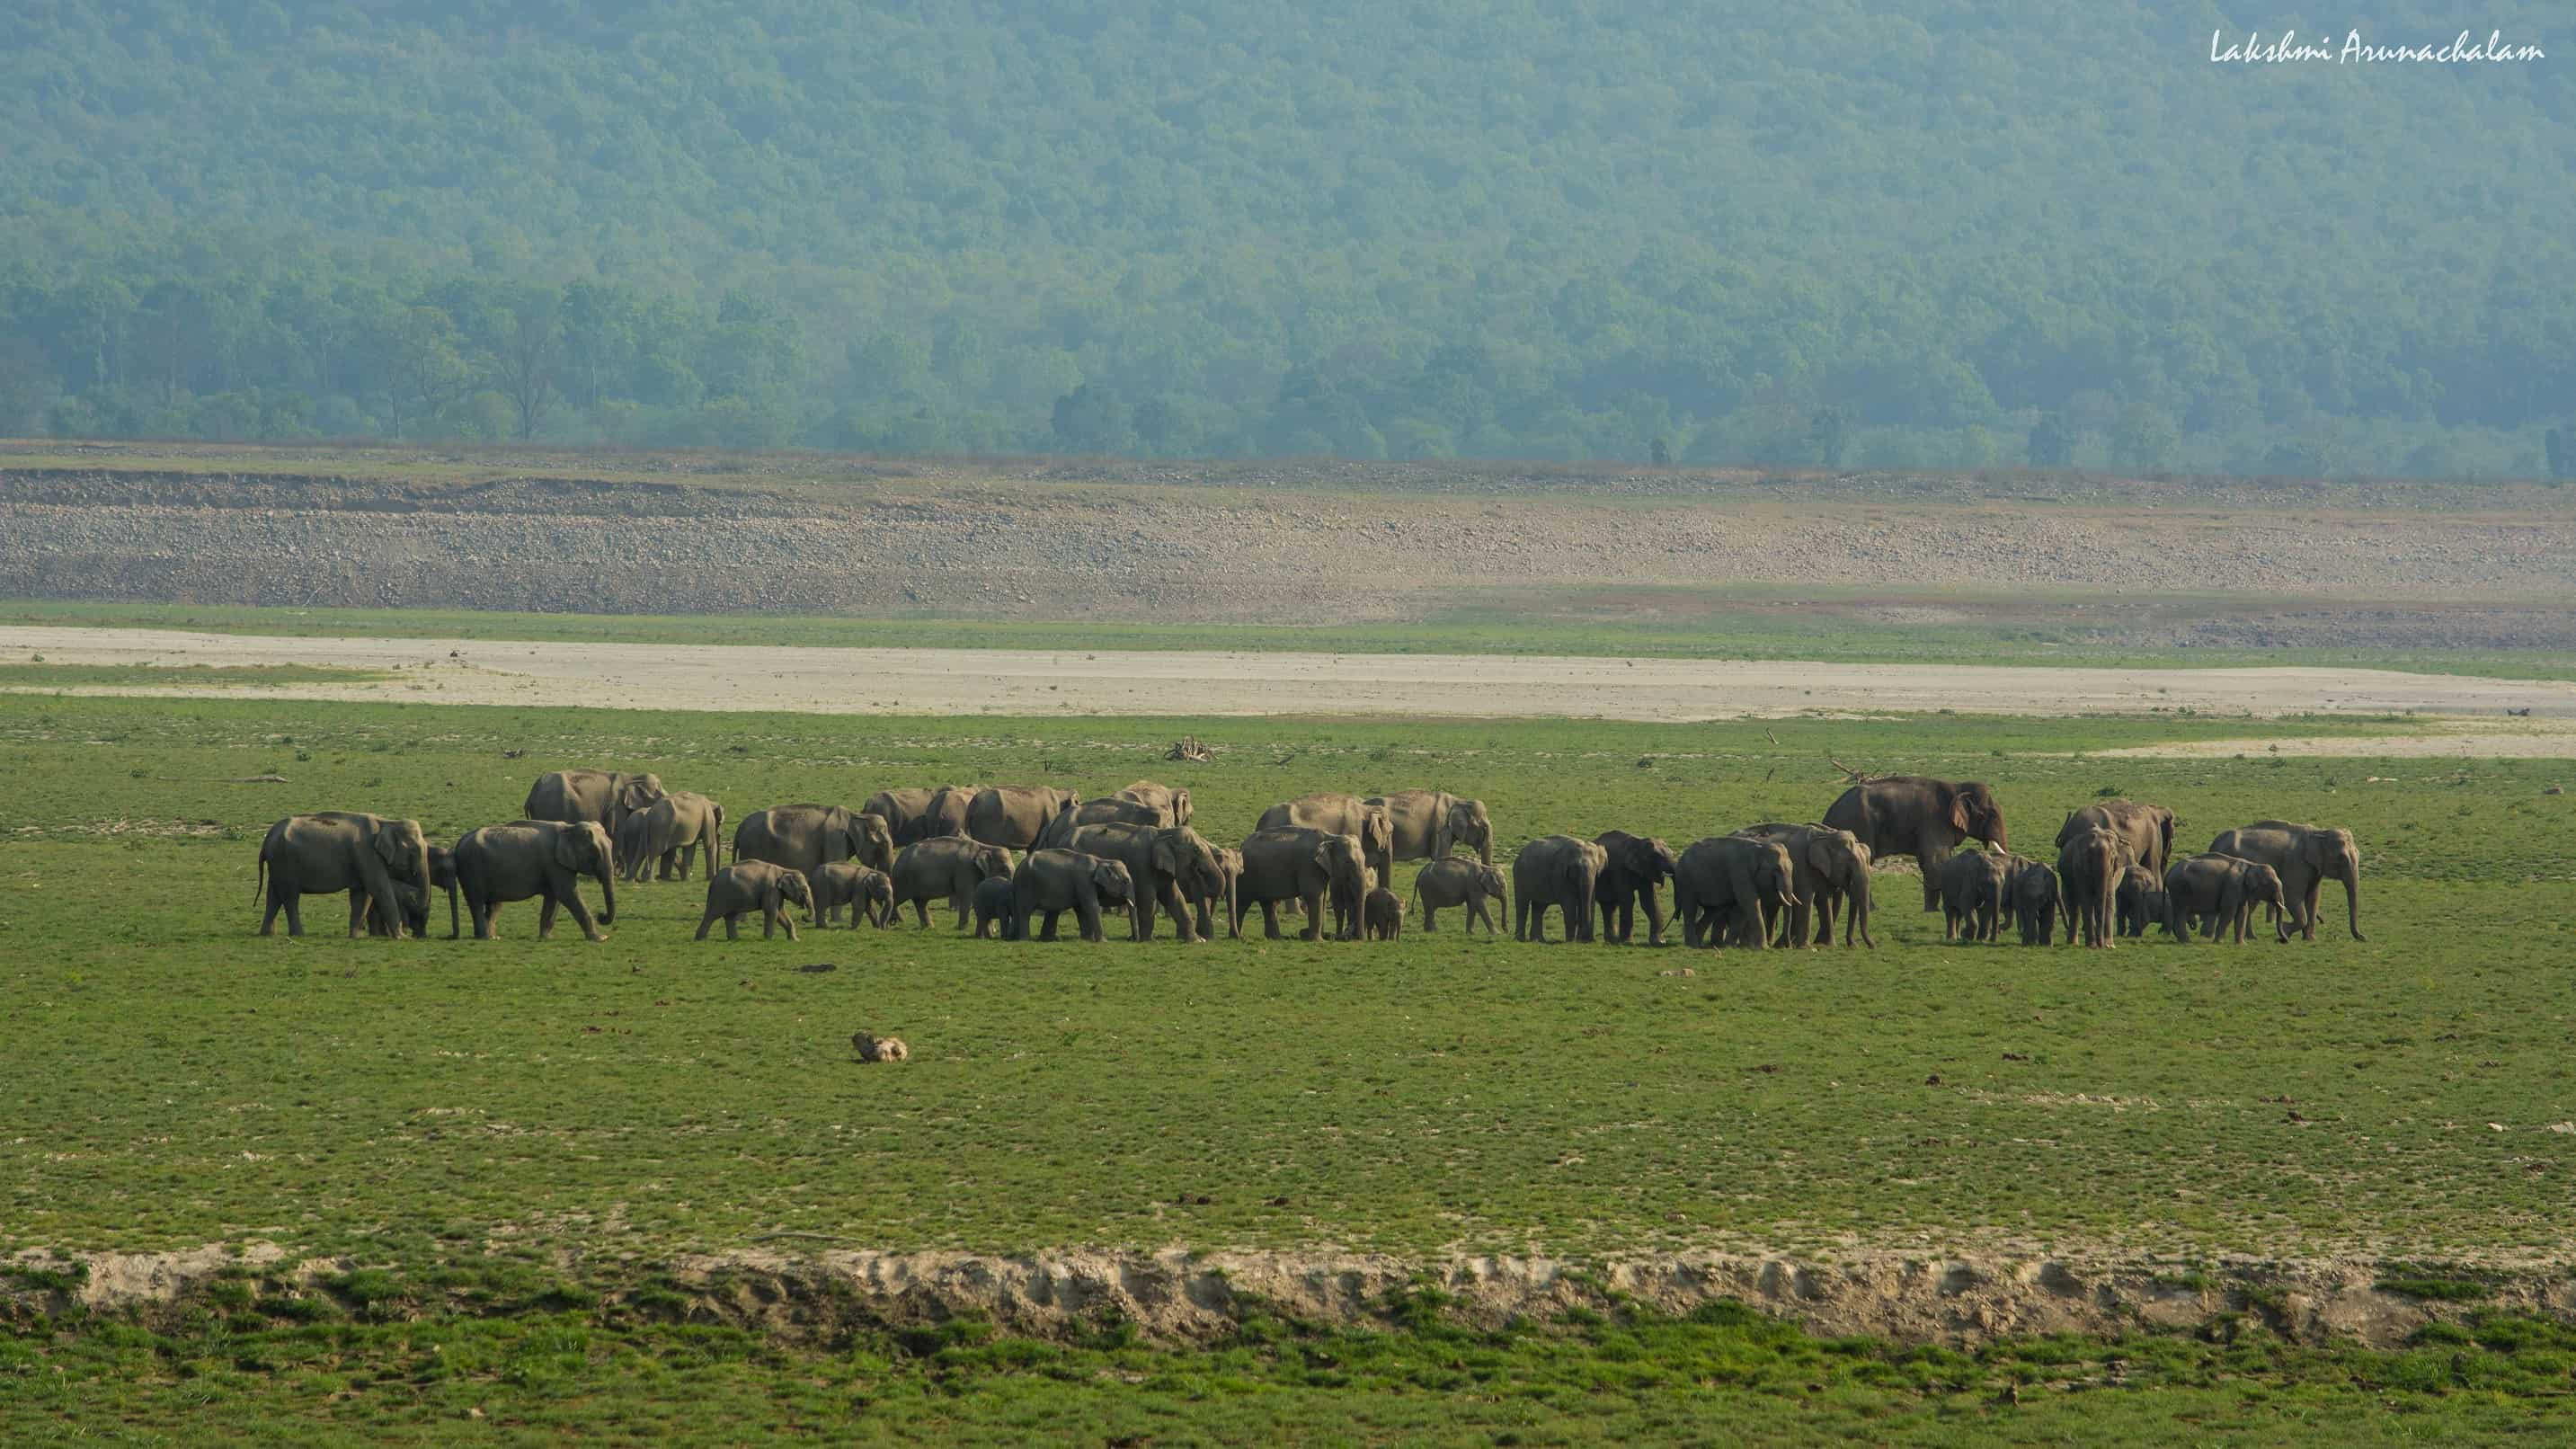 Herd of elephants, Dhikala